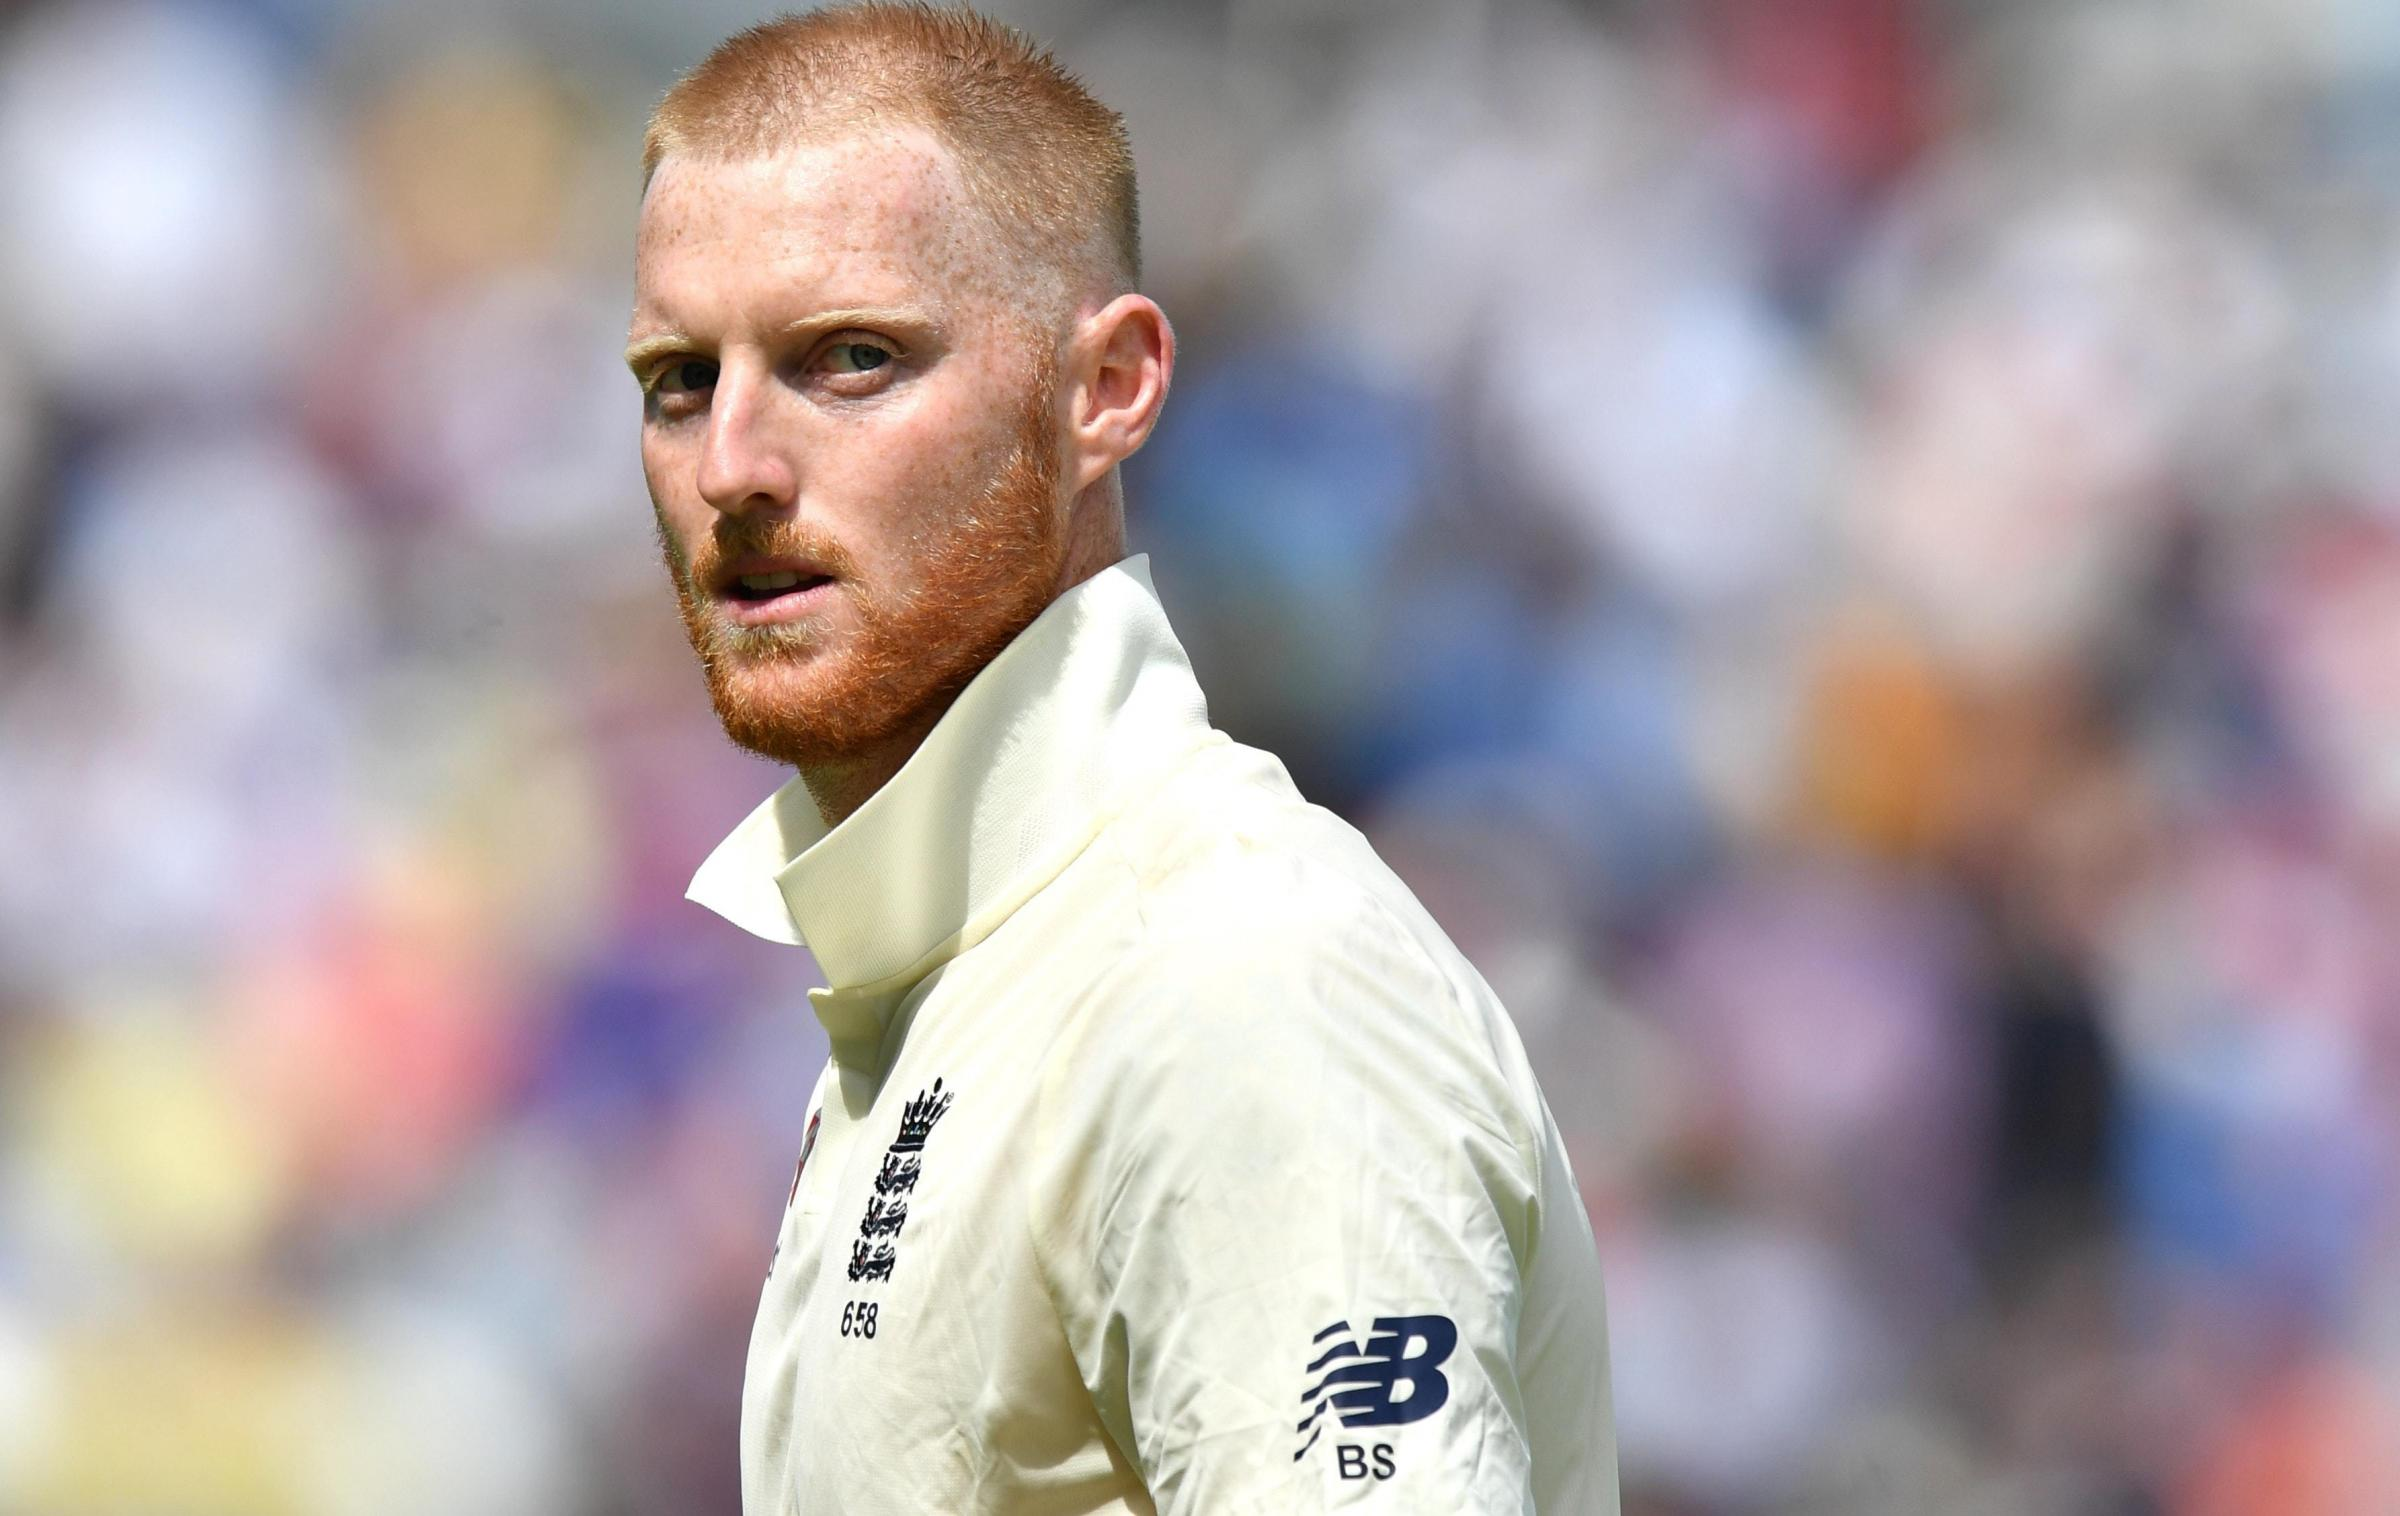 Ben Stokes was cleared of affray in August